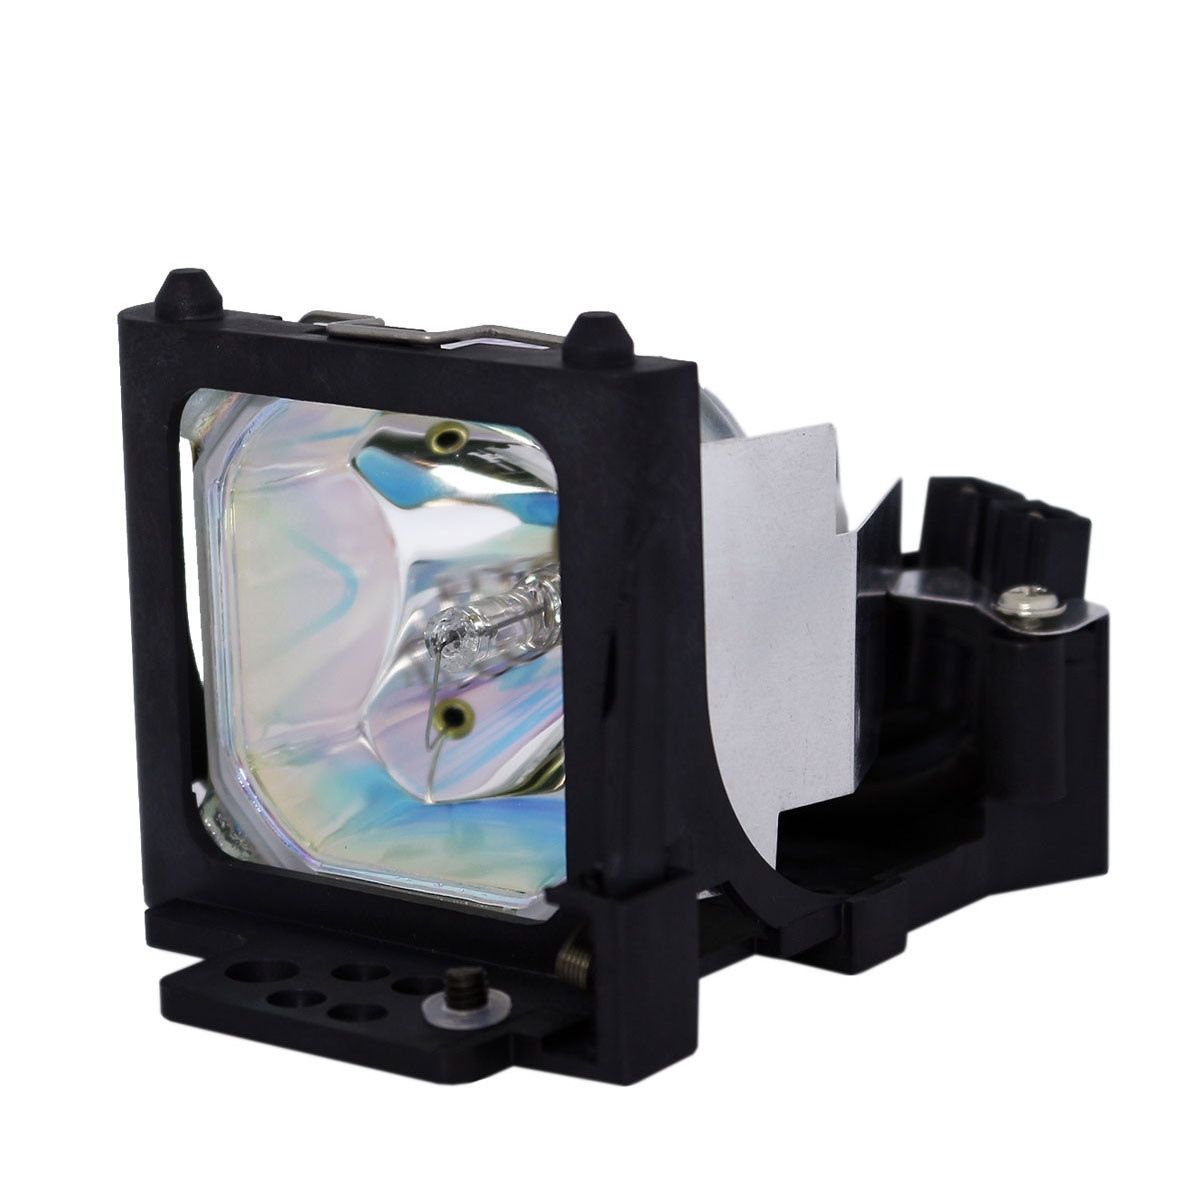 Projector Lamp Bulb DT00301 DT-00301 for HITACHI CP-S220 CP-S220A CP-S220W CP-S270 CP-X270 PJ-LC2001 with housing